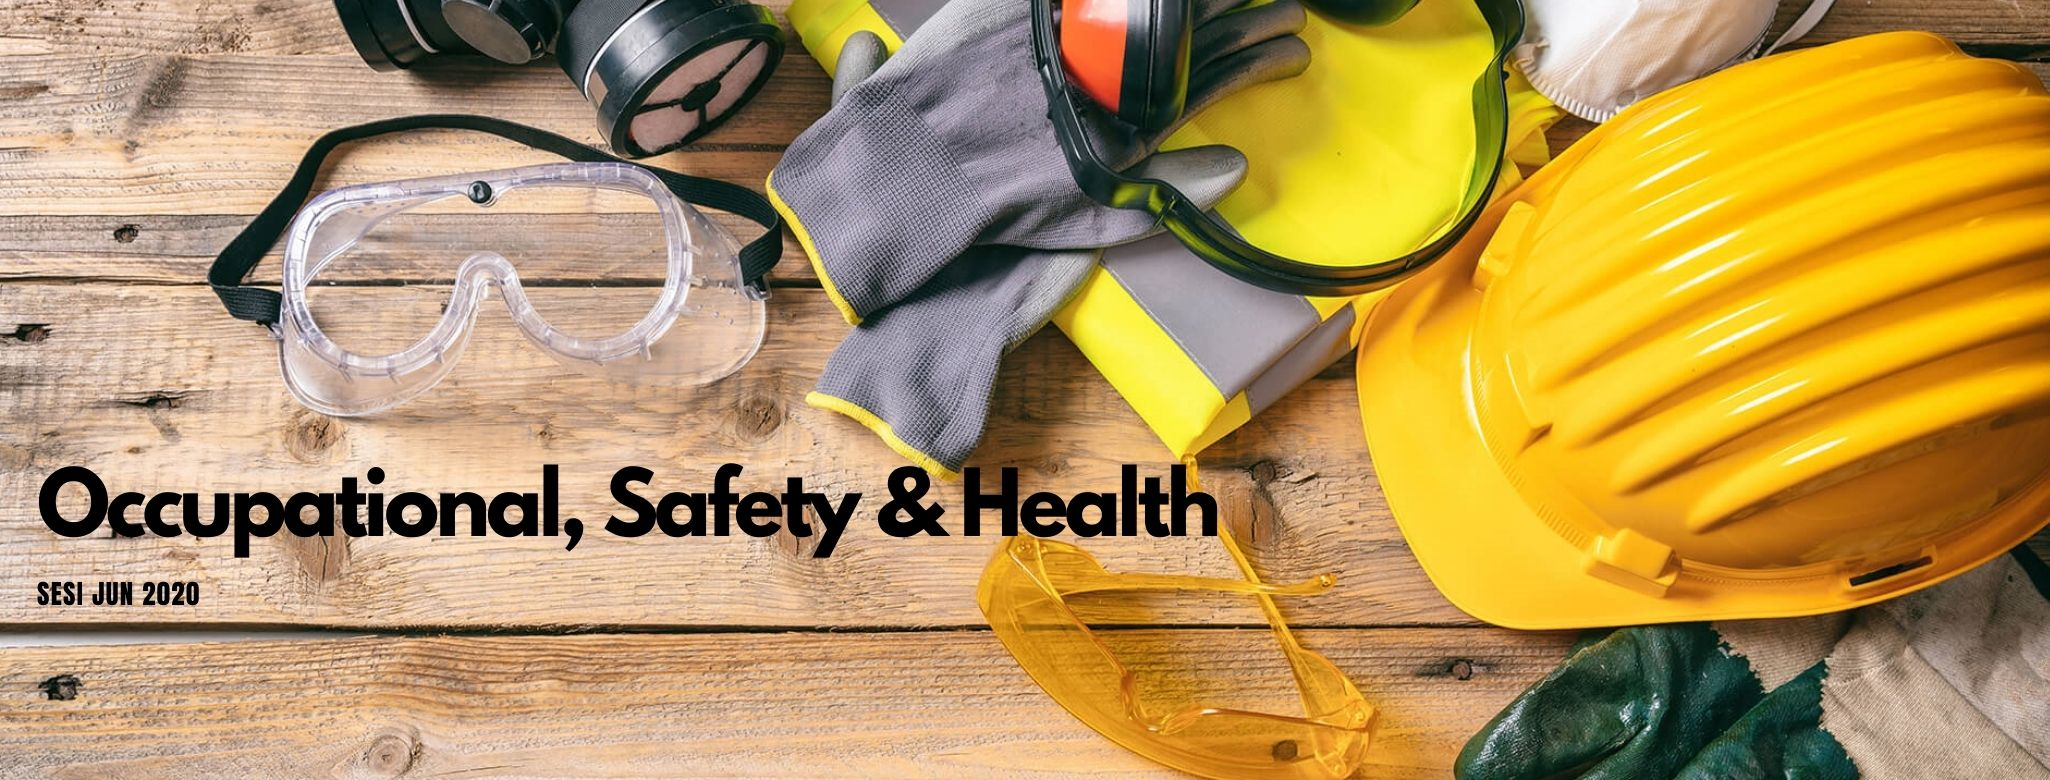 DUW10012 OCCUPATIONAL, SAFETY AND HEALTH (JUNE 2020)